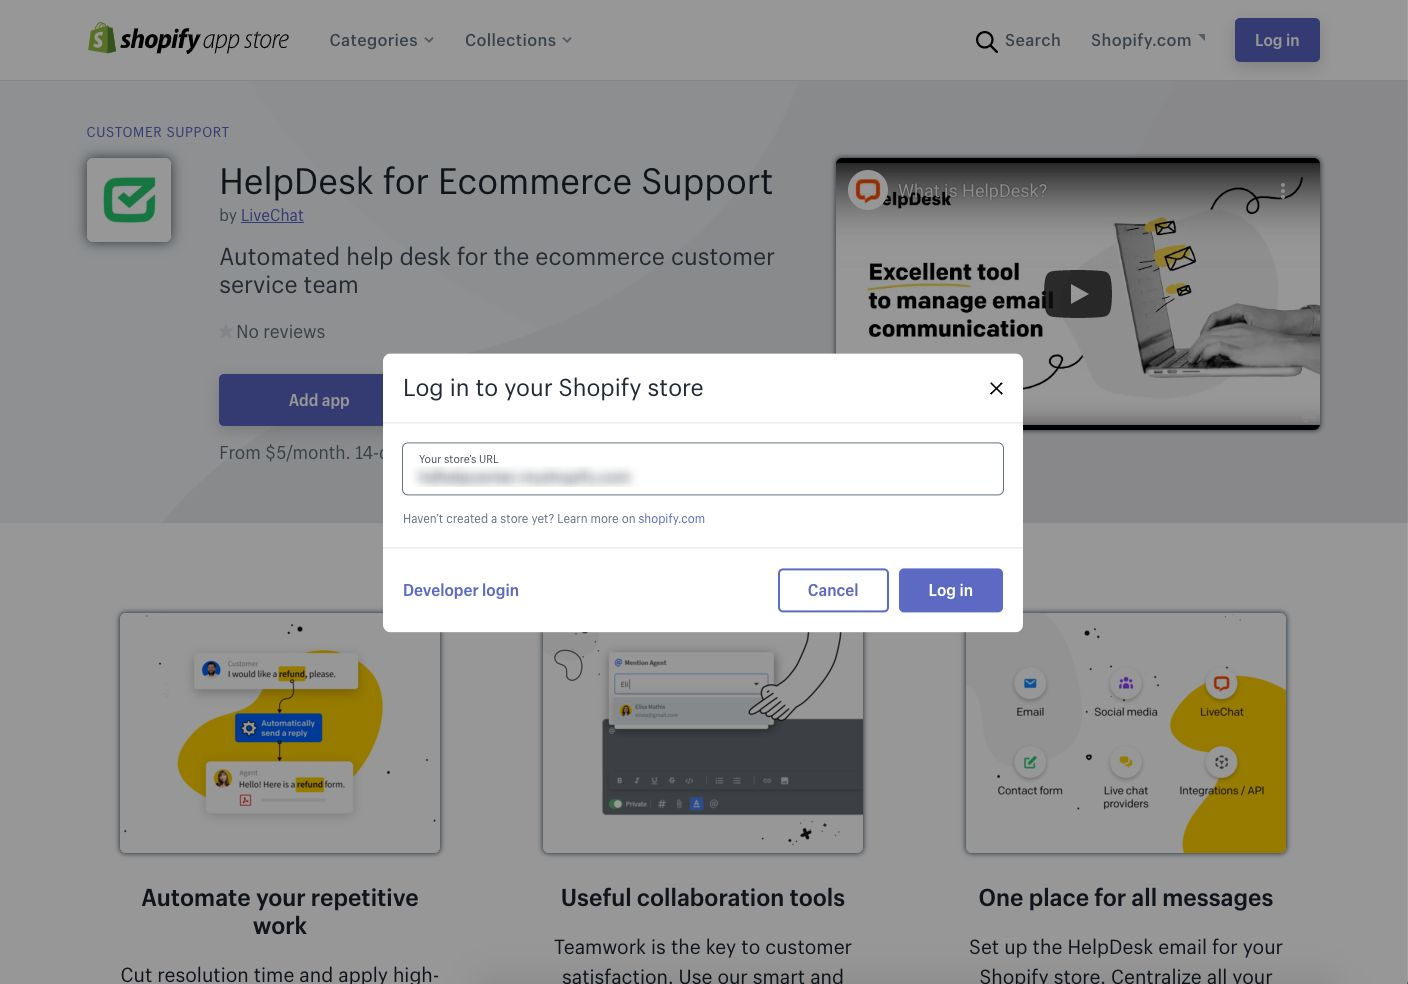 A pop-up window for logging into your Shopify store.